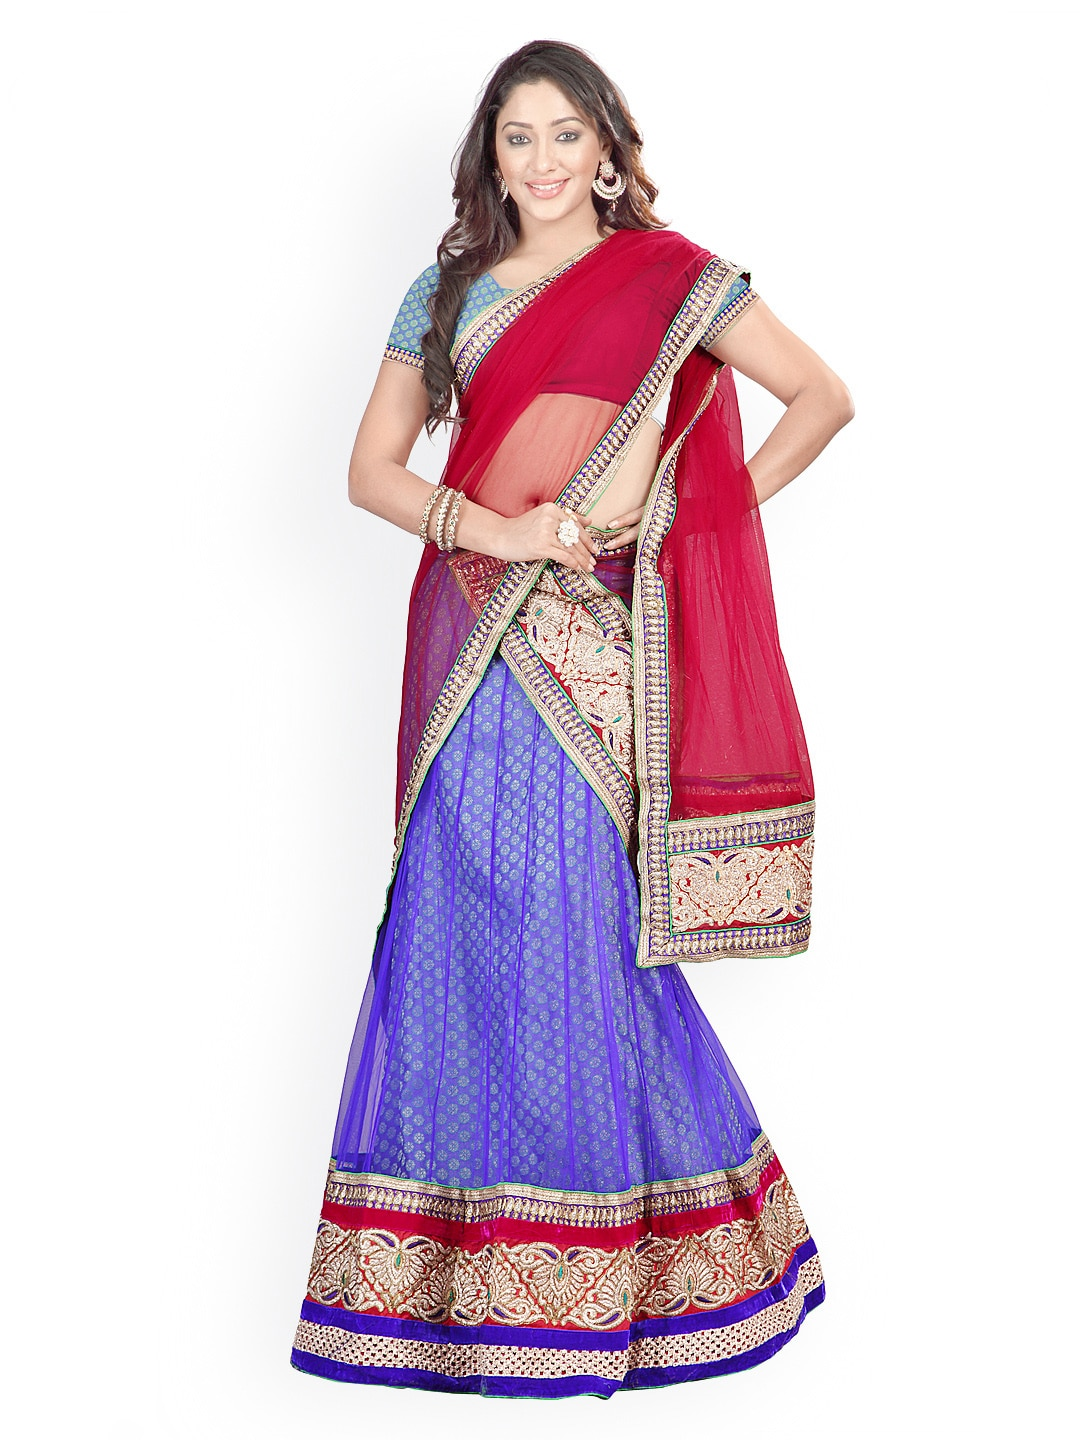 Florence Blue & Red Net & Brasso Semi-Stitched Lehenga Choli Material with Dupatta